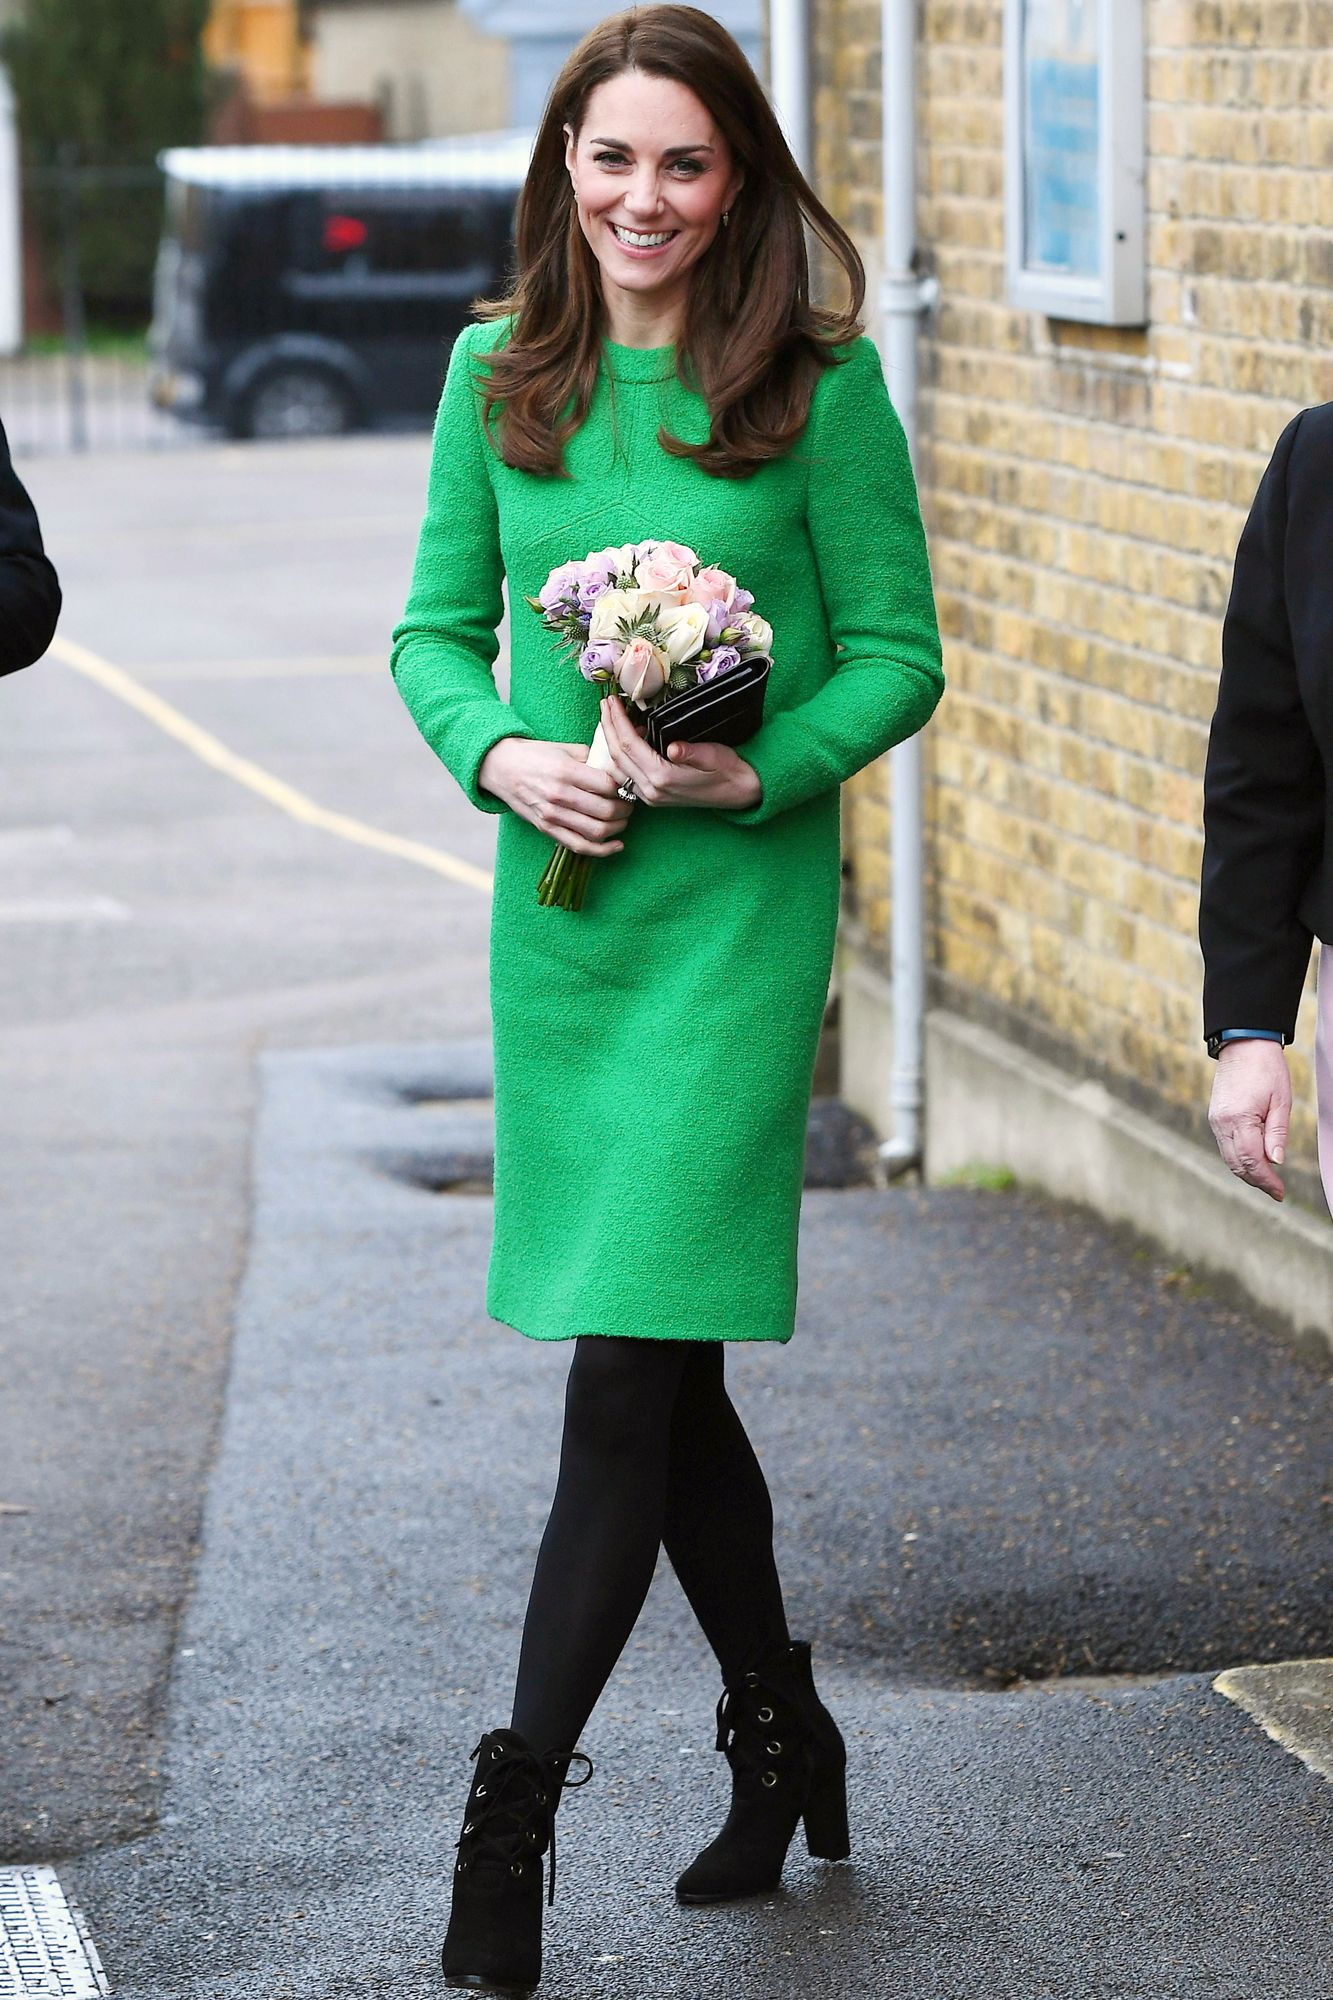 Catherine Duchess of Cambridge visits schools in support of Children's Mental Health, London, UK - 05 Feb 2019